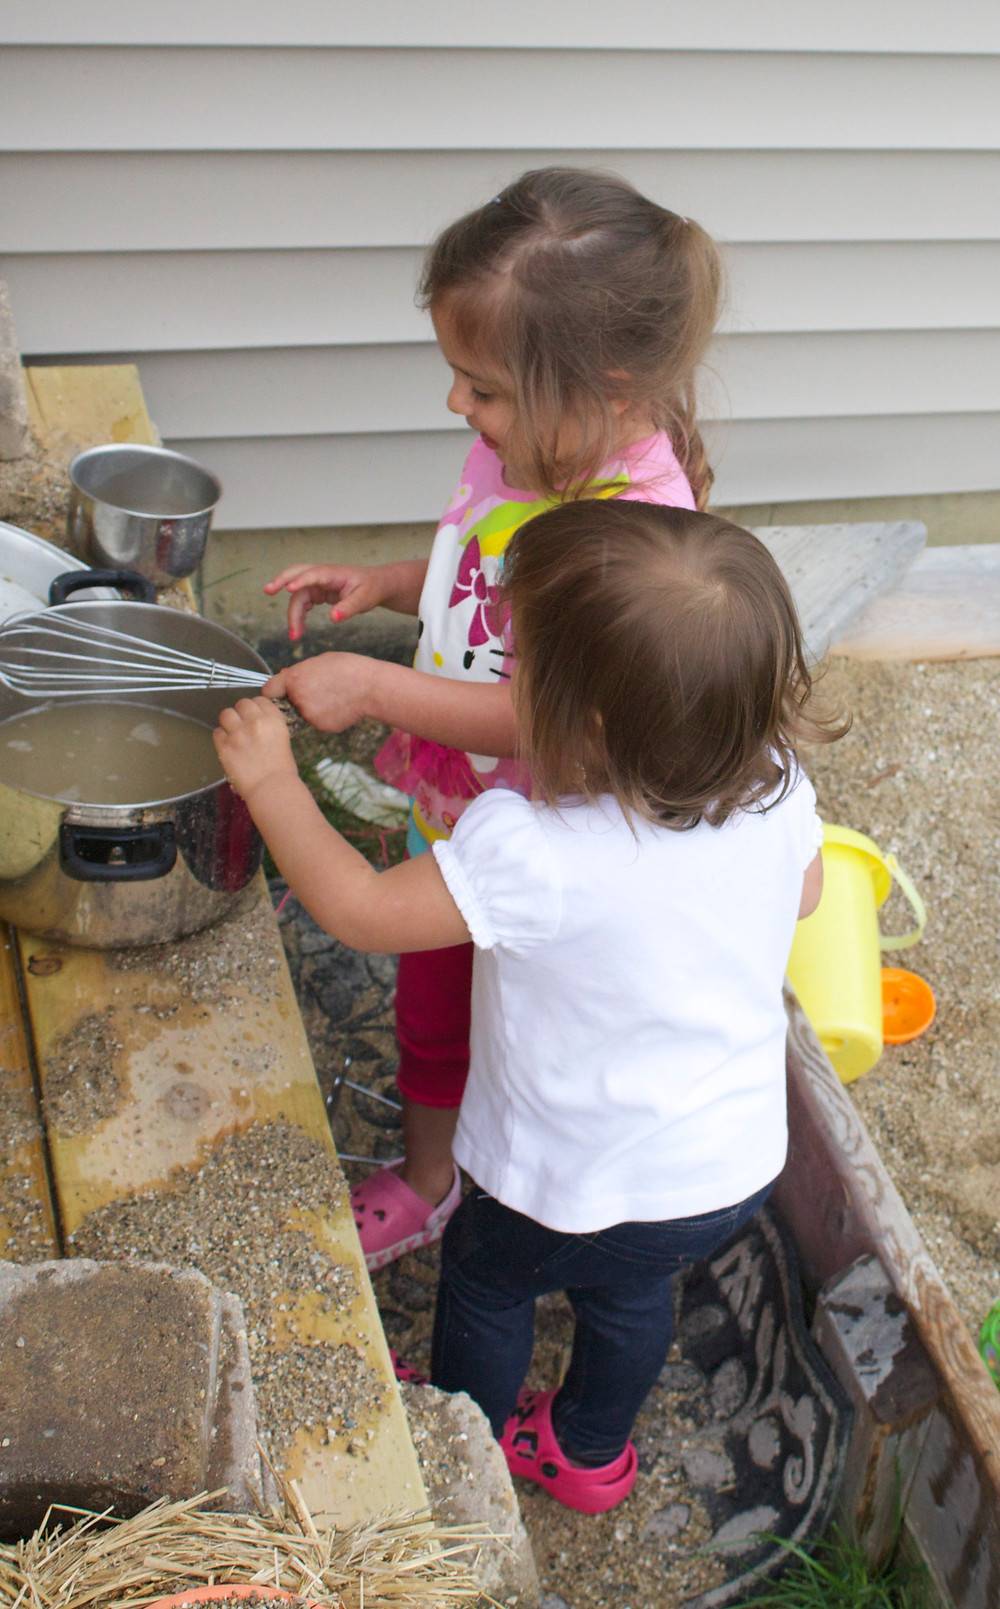 Outdoor playtime in the mud kitchen at Blue Sky Daycare home daycare